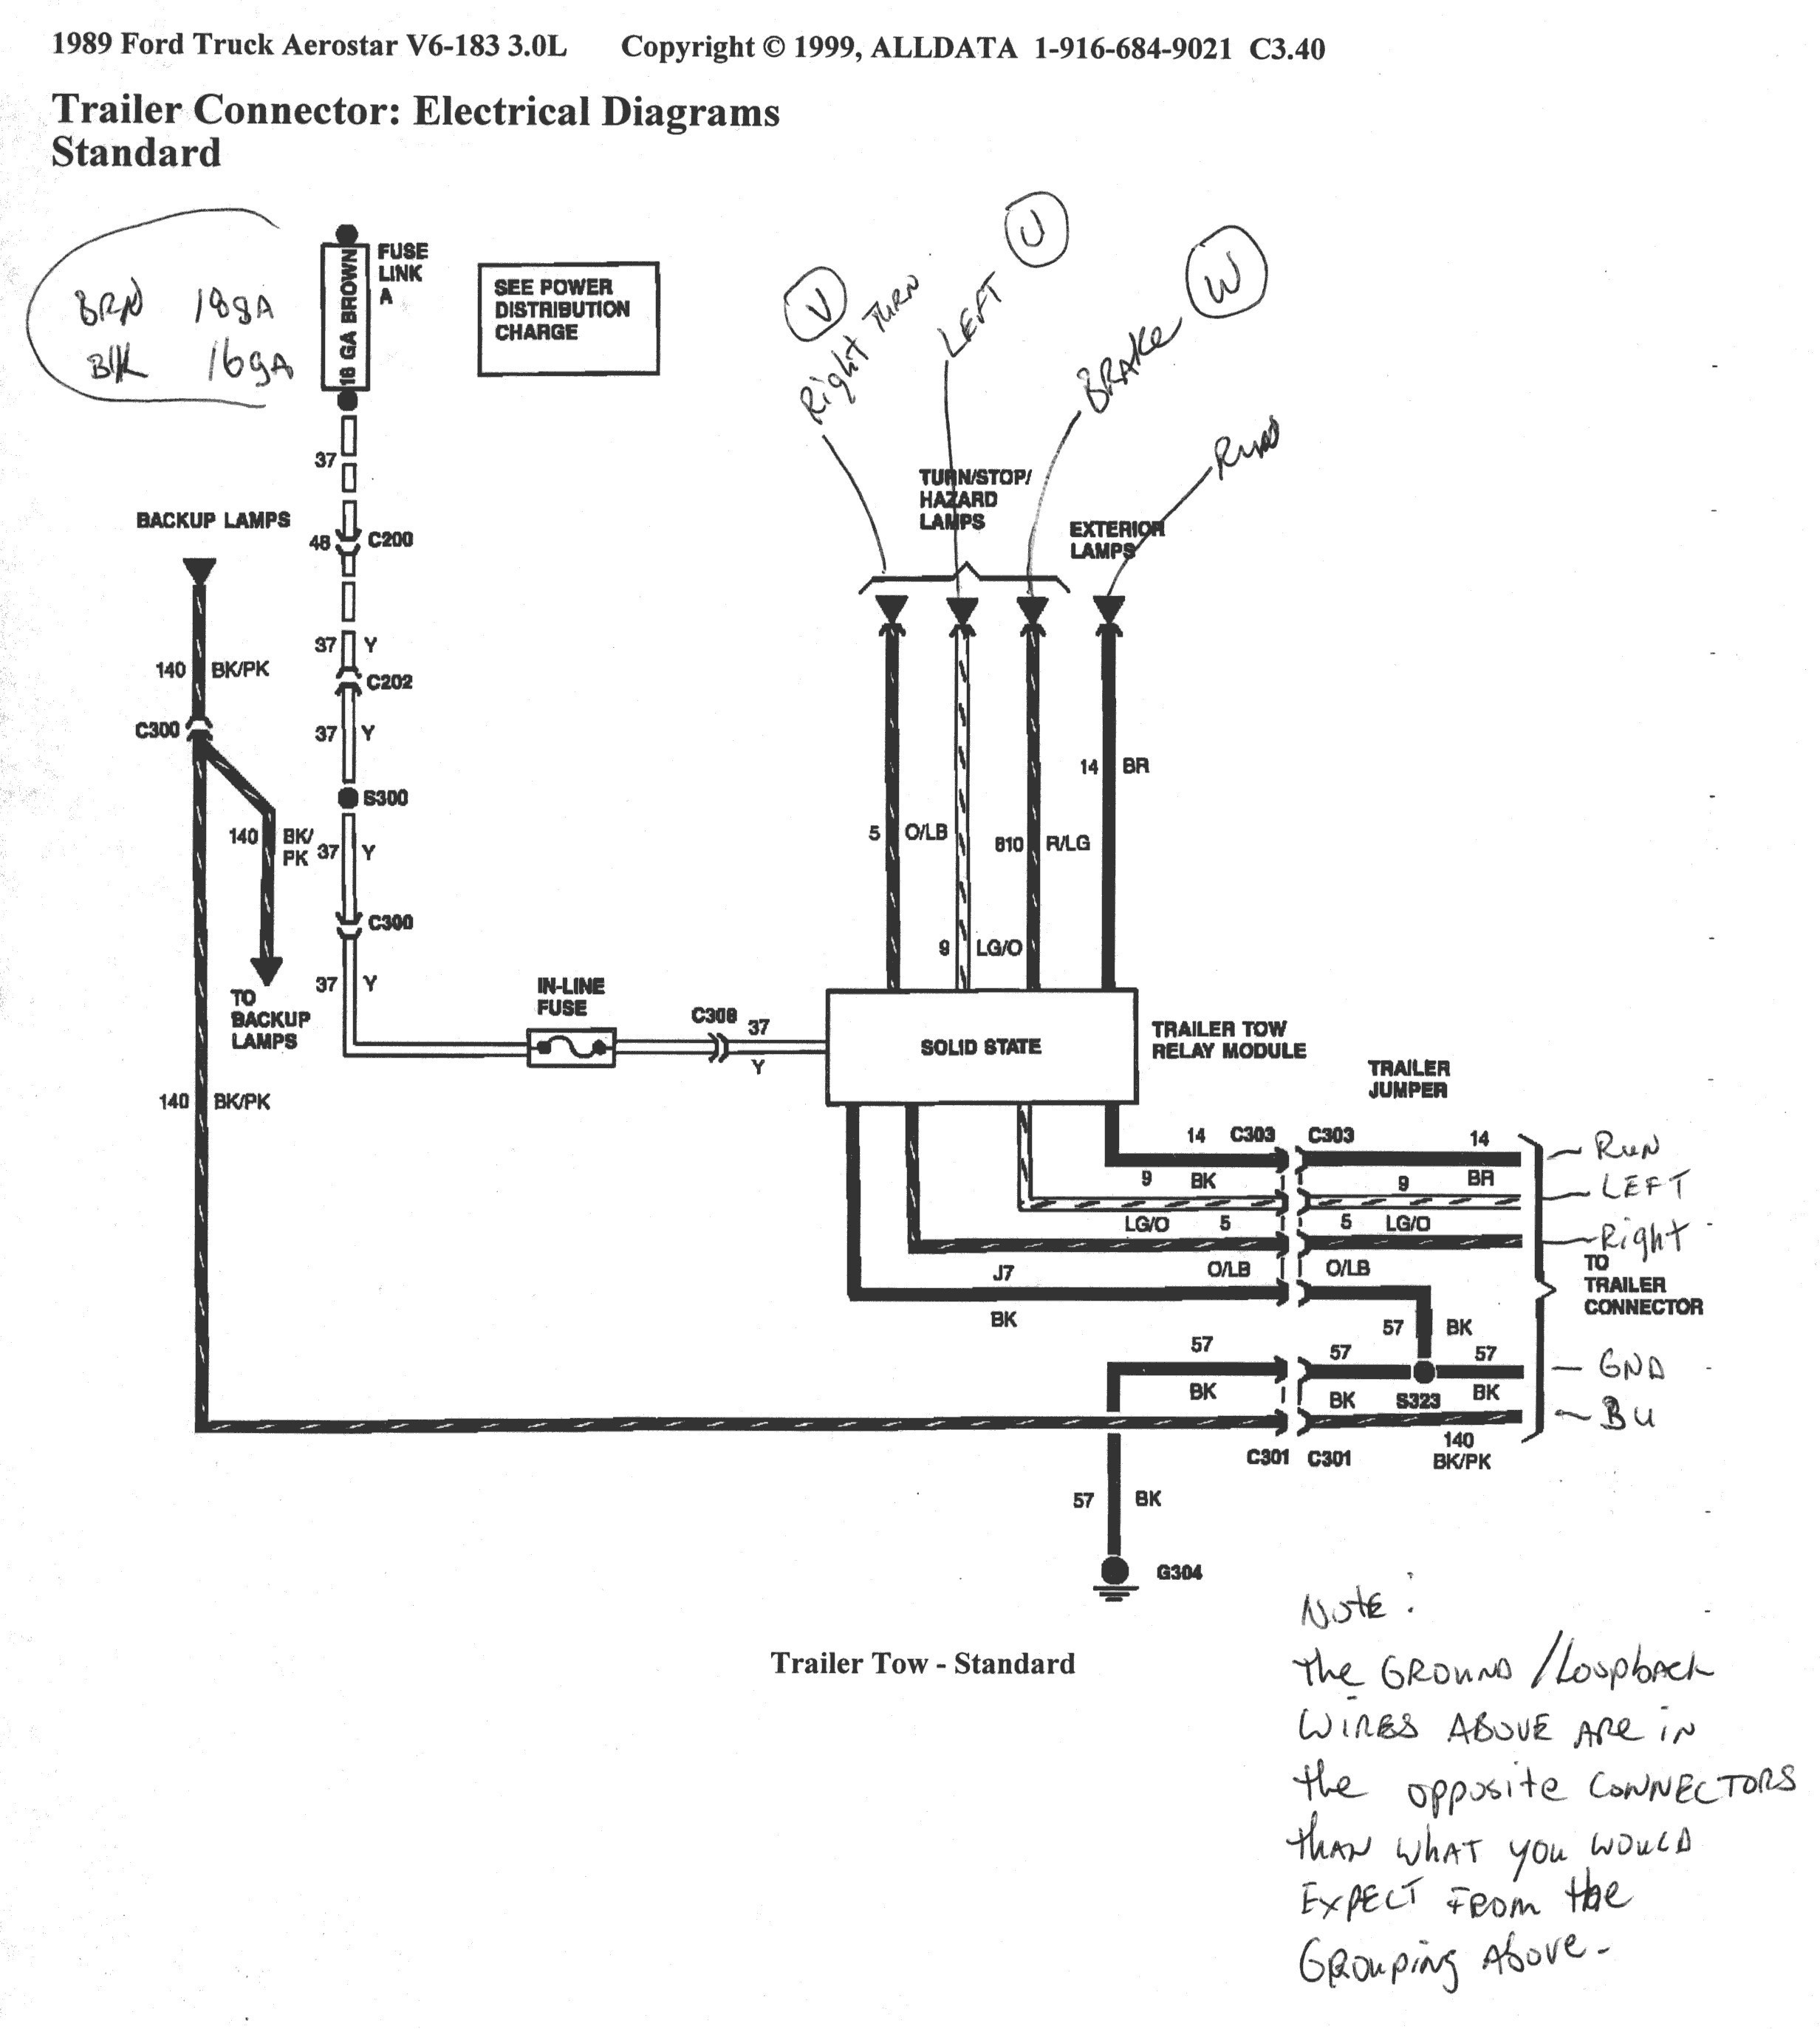 2006 f550 wiring diagram 1999 ford f250 tail light wiring diagram | wiring diagram ...